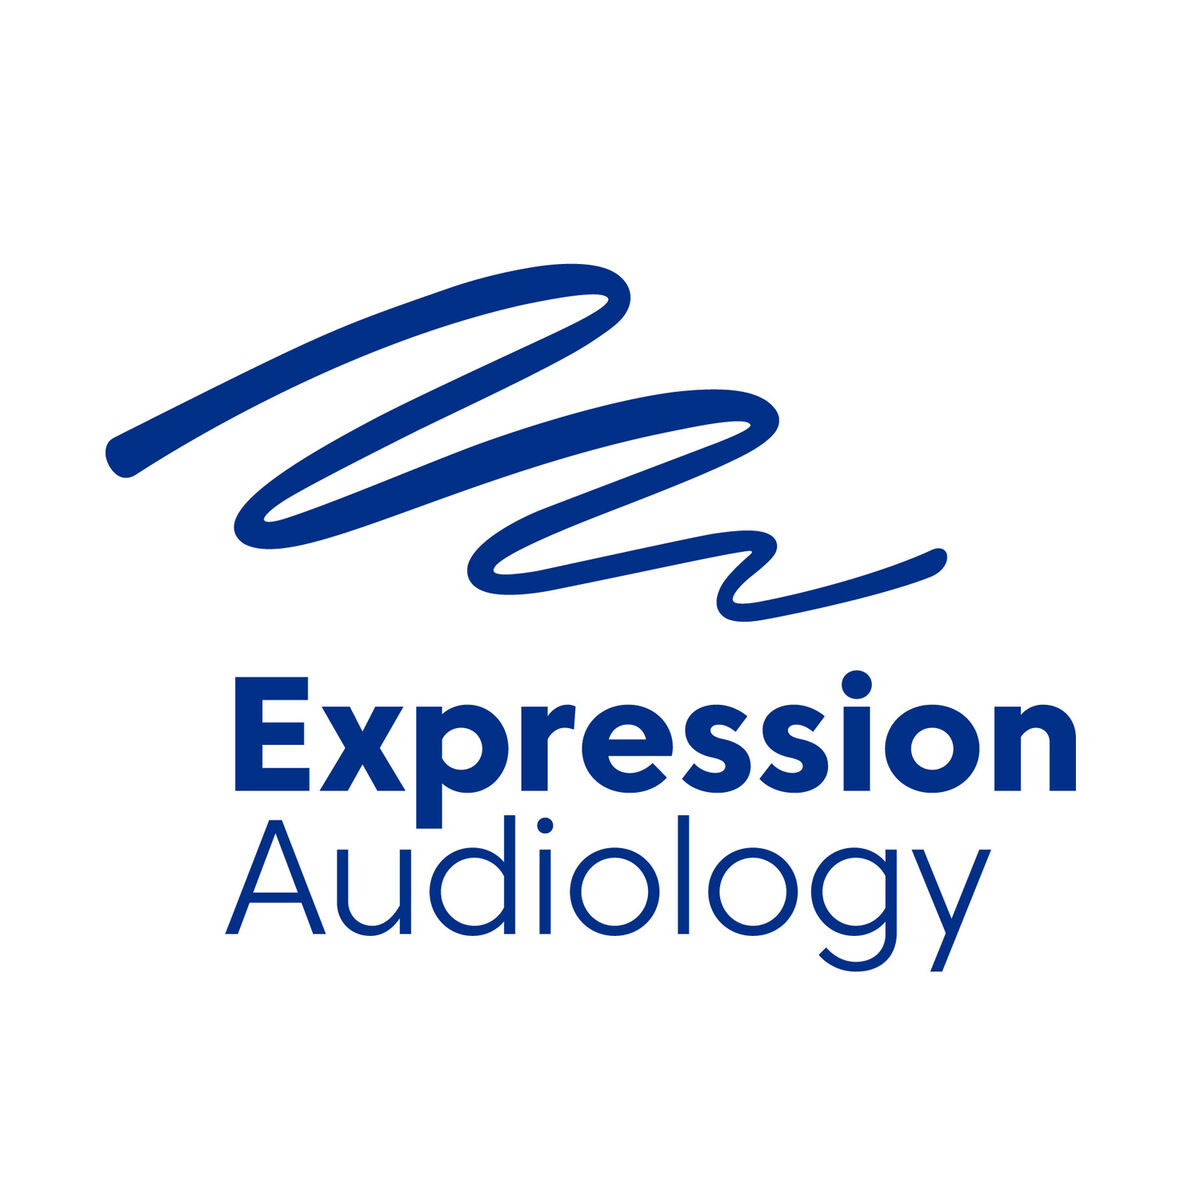 Expression Audiology logo